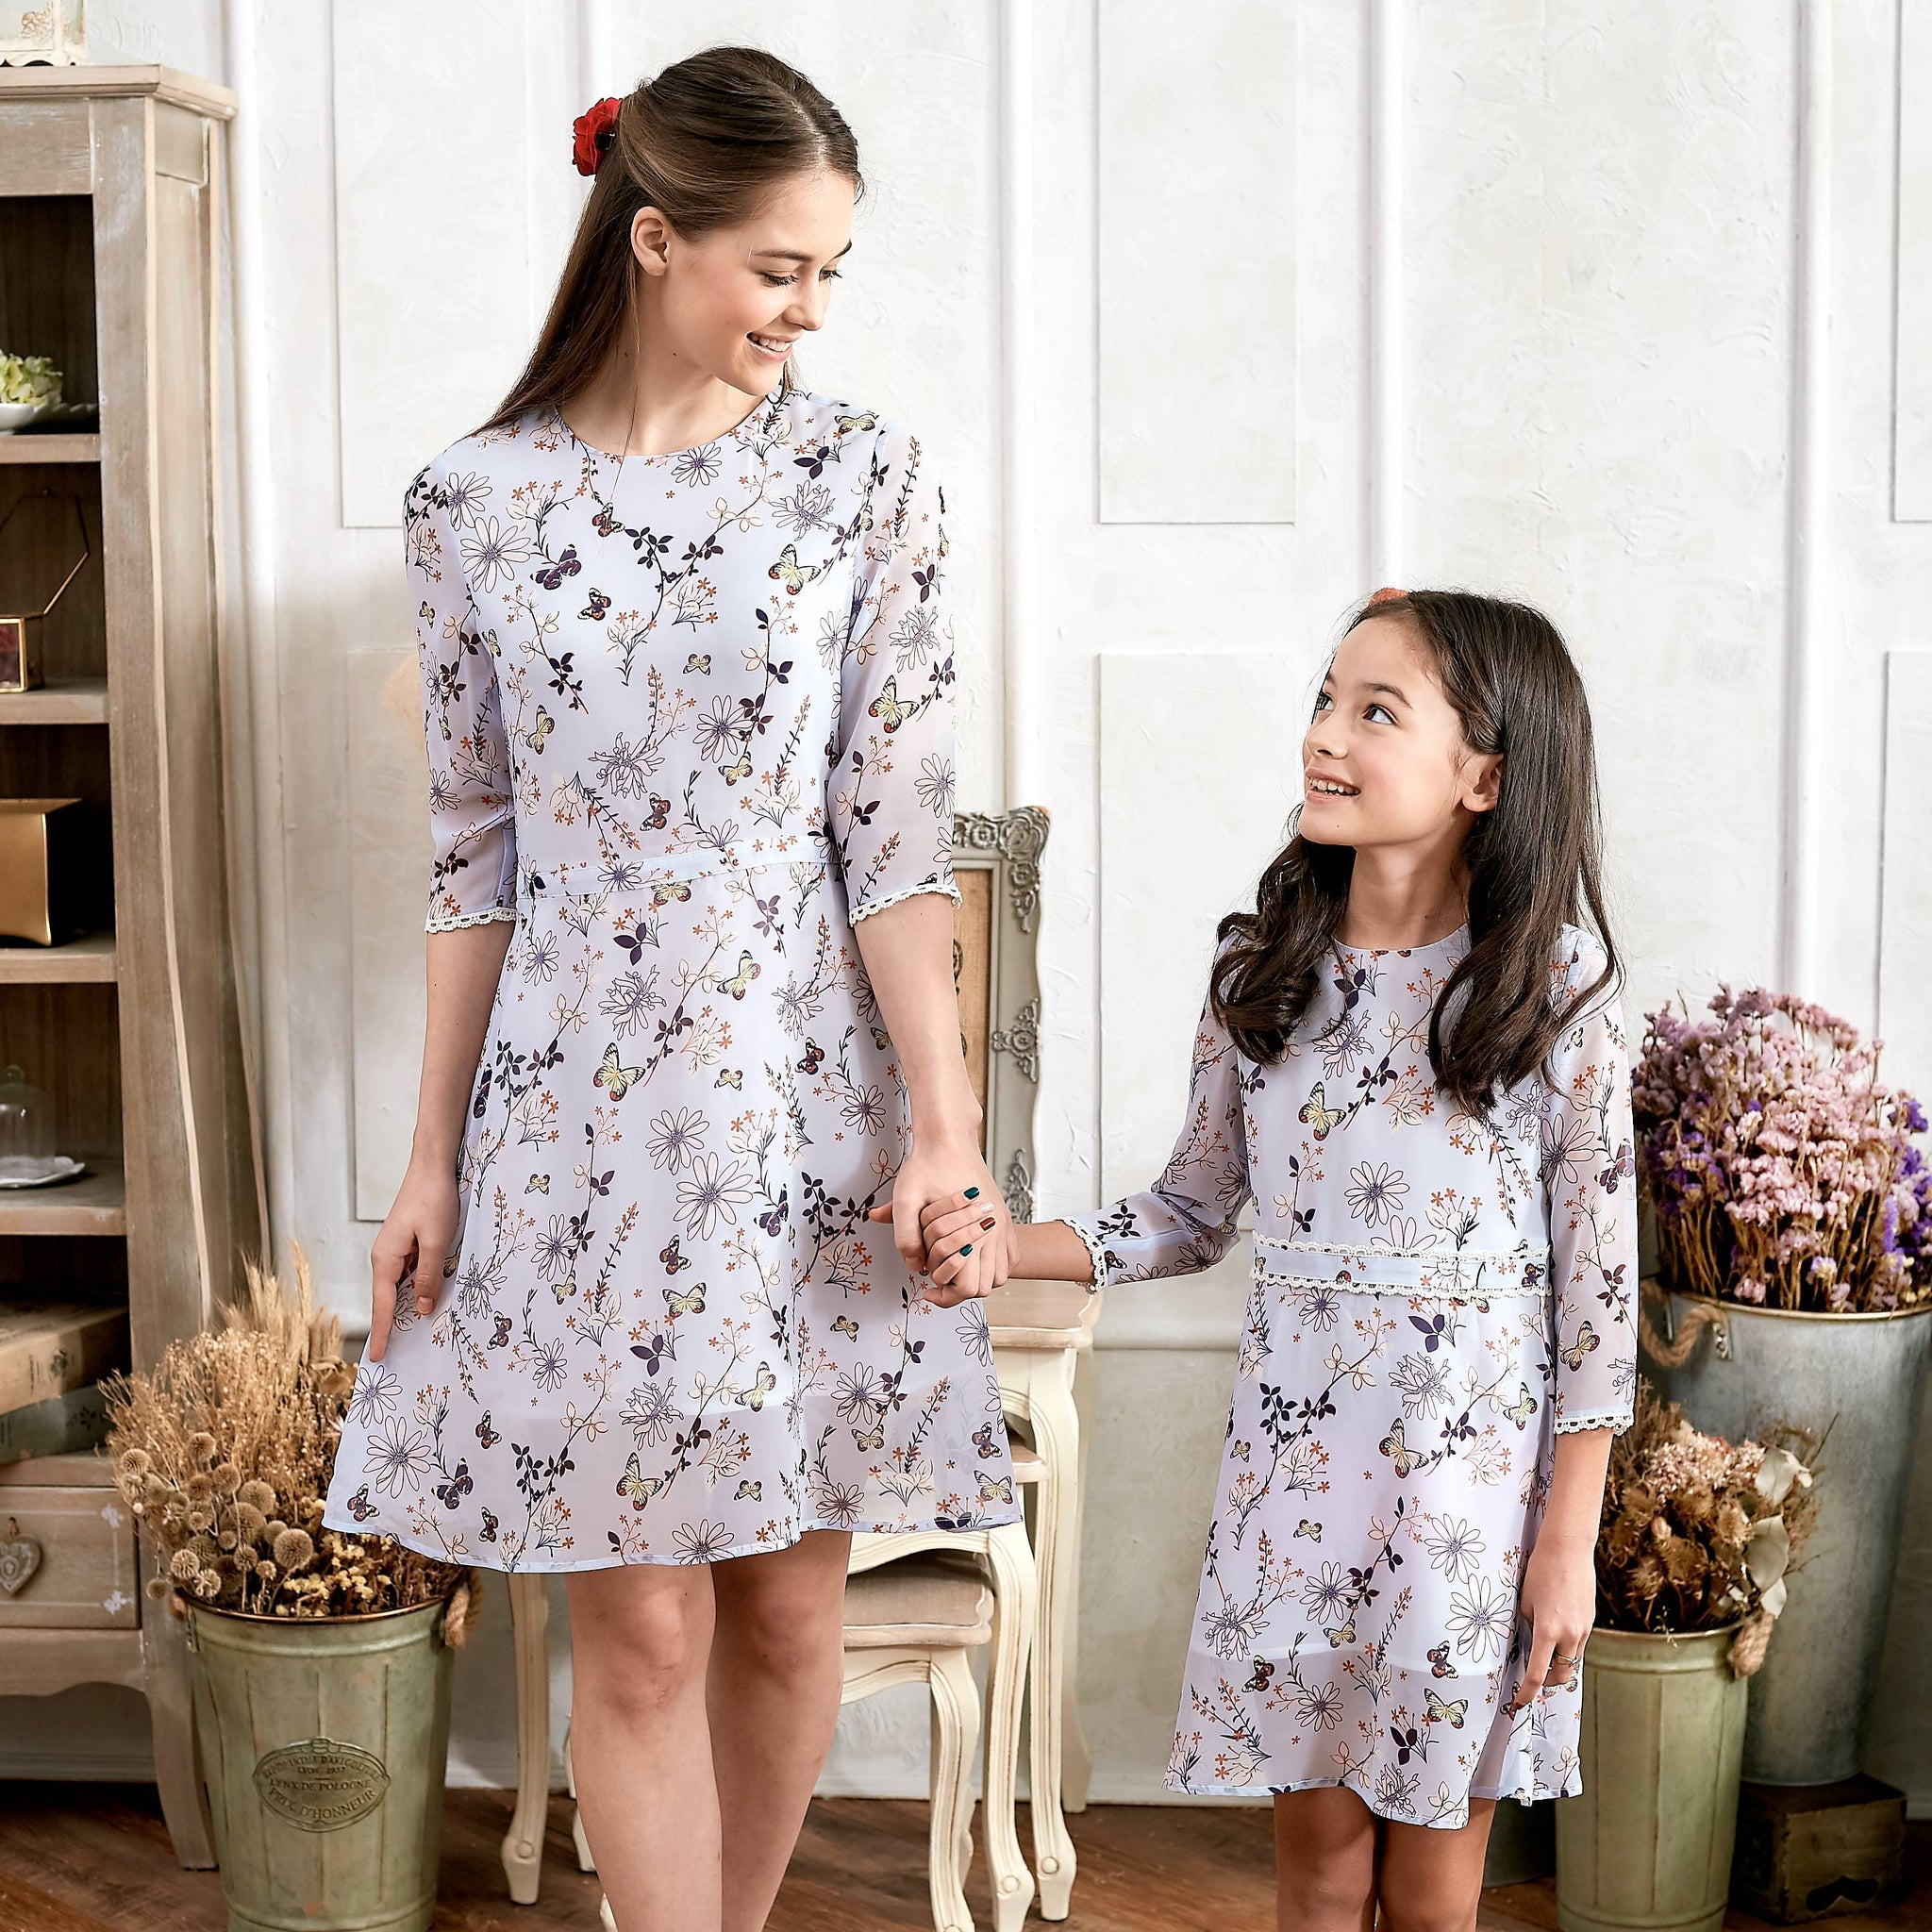 (Mommy & Me) Floral Lace Dress (set of 2) - Bunny n Bloom Mommy & Me Dress